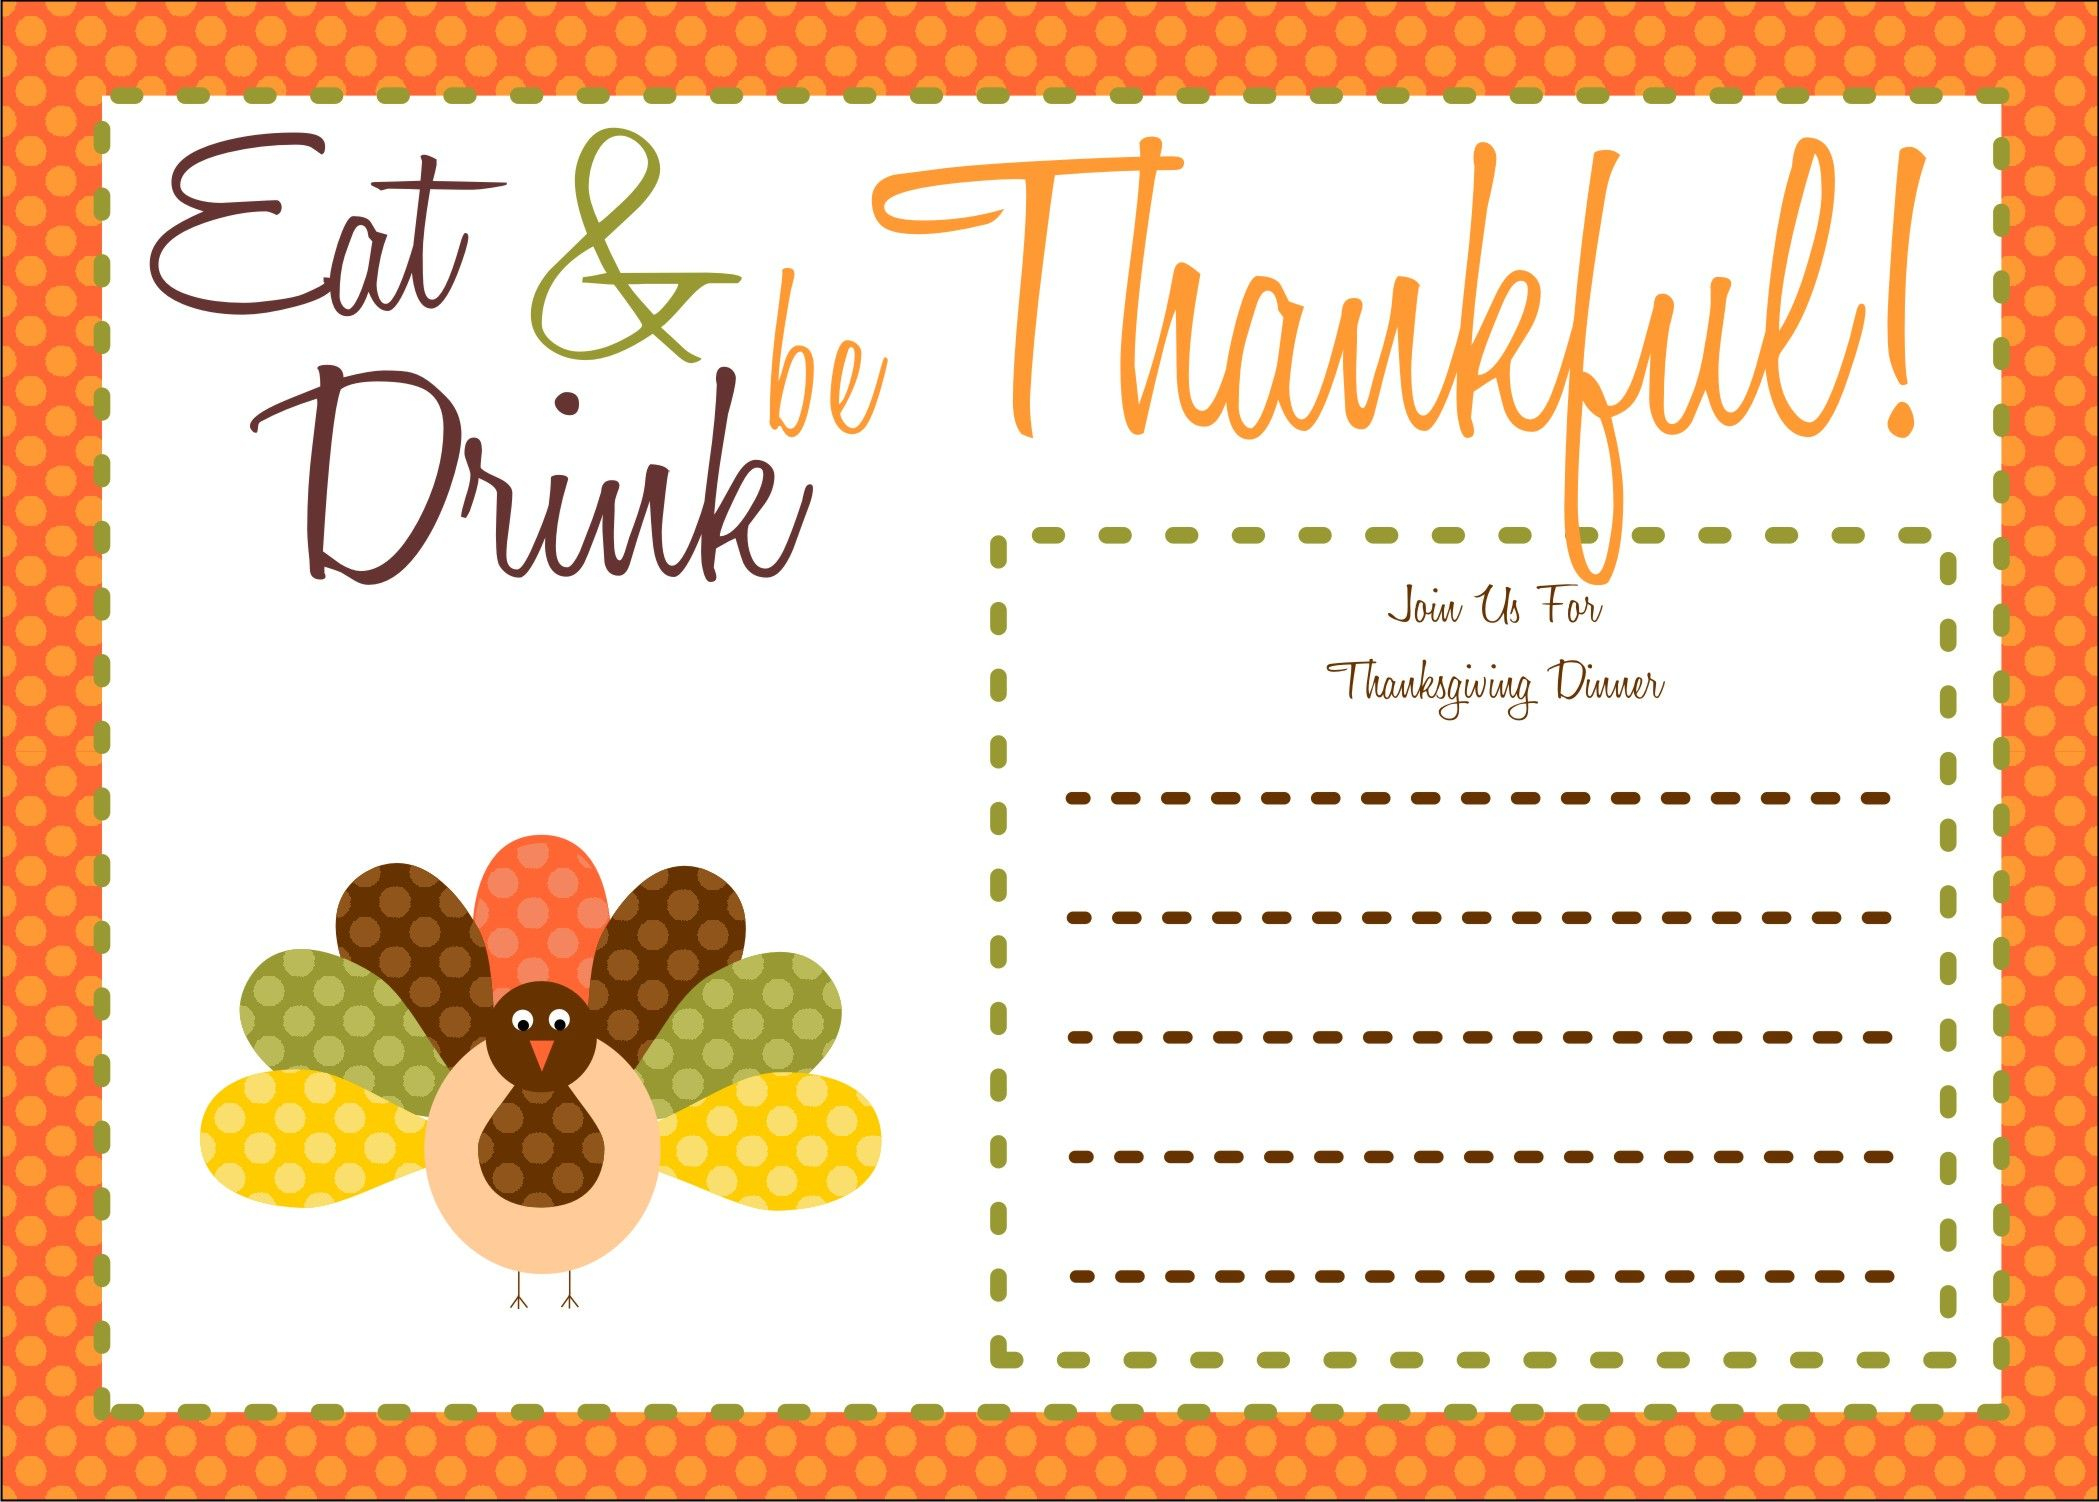 Free Thanksgiving Printables From The Party Bakery | Free Printables - Free Printable Thanksgiving Invitation Templates